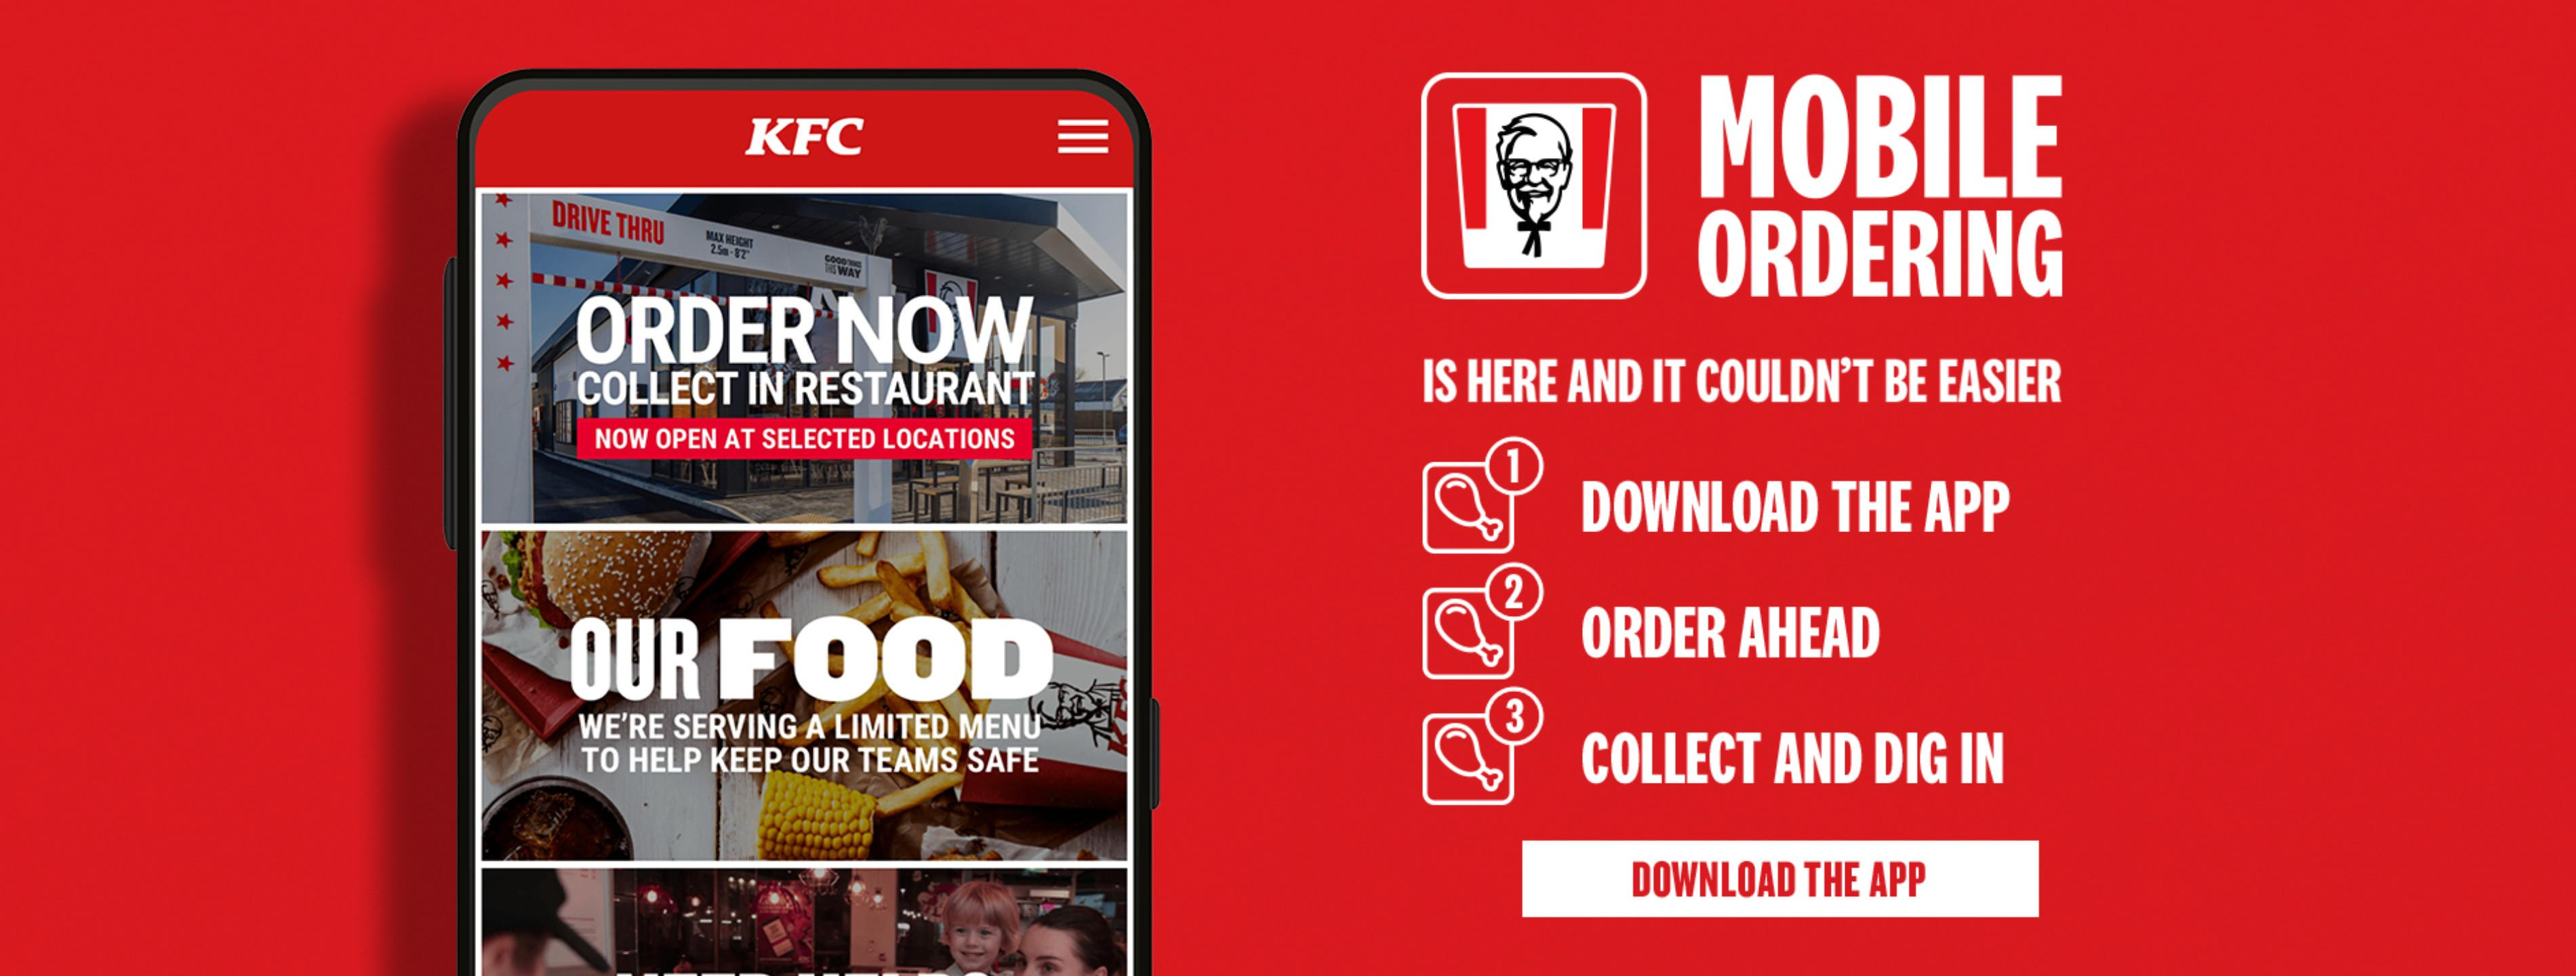 KFC MOBILE ORDERING IS HERE